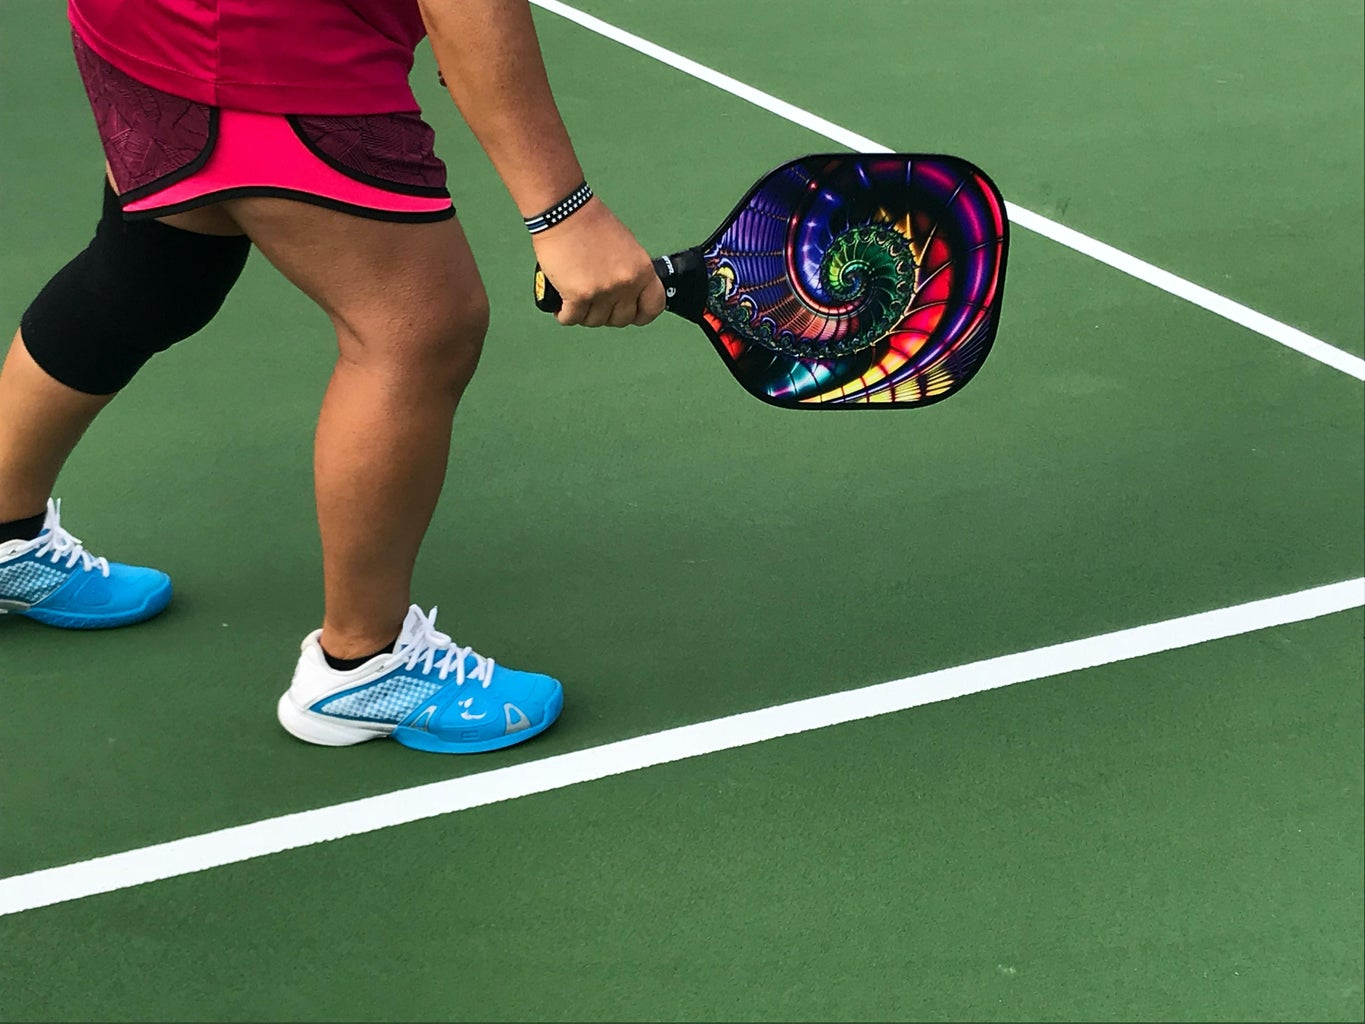 How to Play Doubles in Pickleball